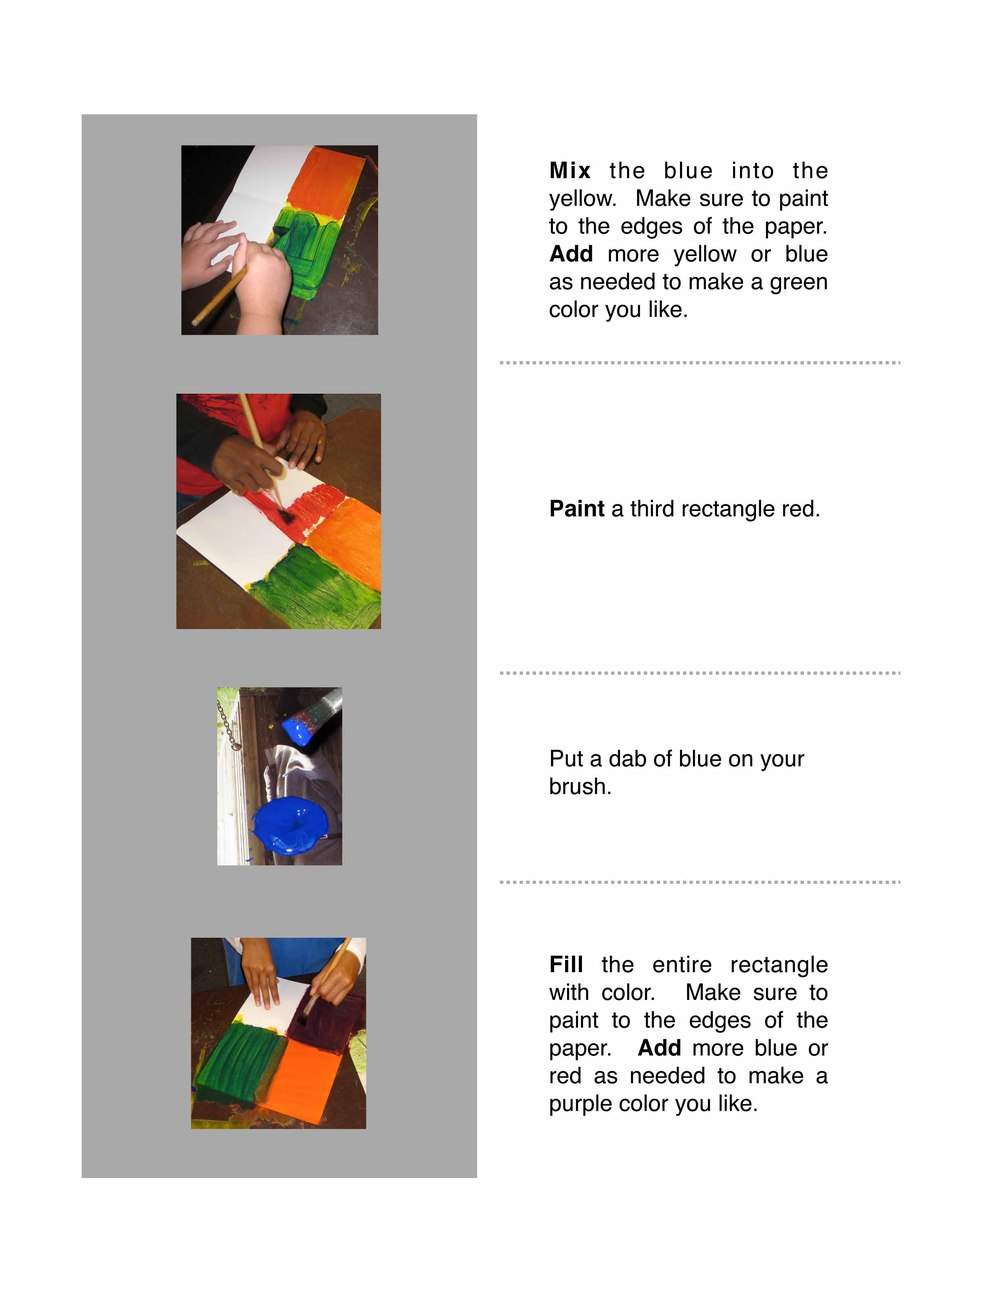 color mixing and layering learning experience-3.jpg